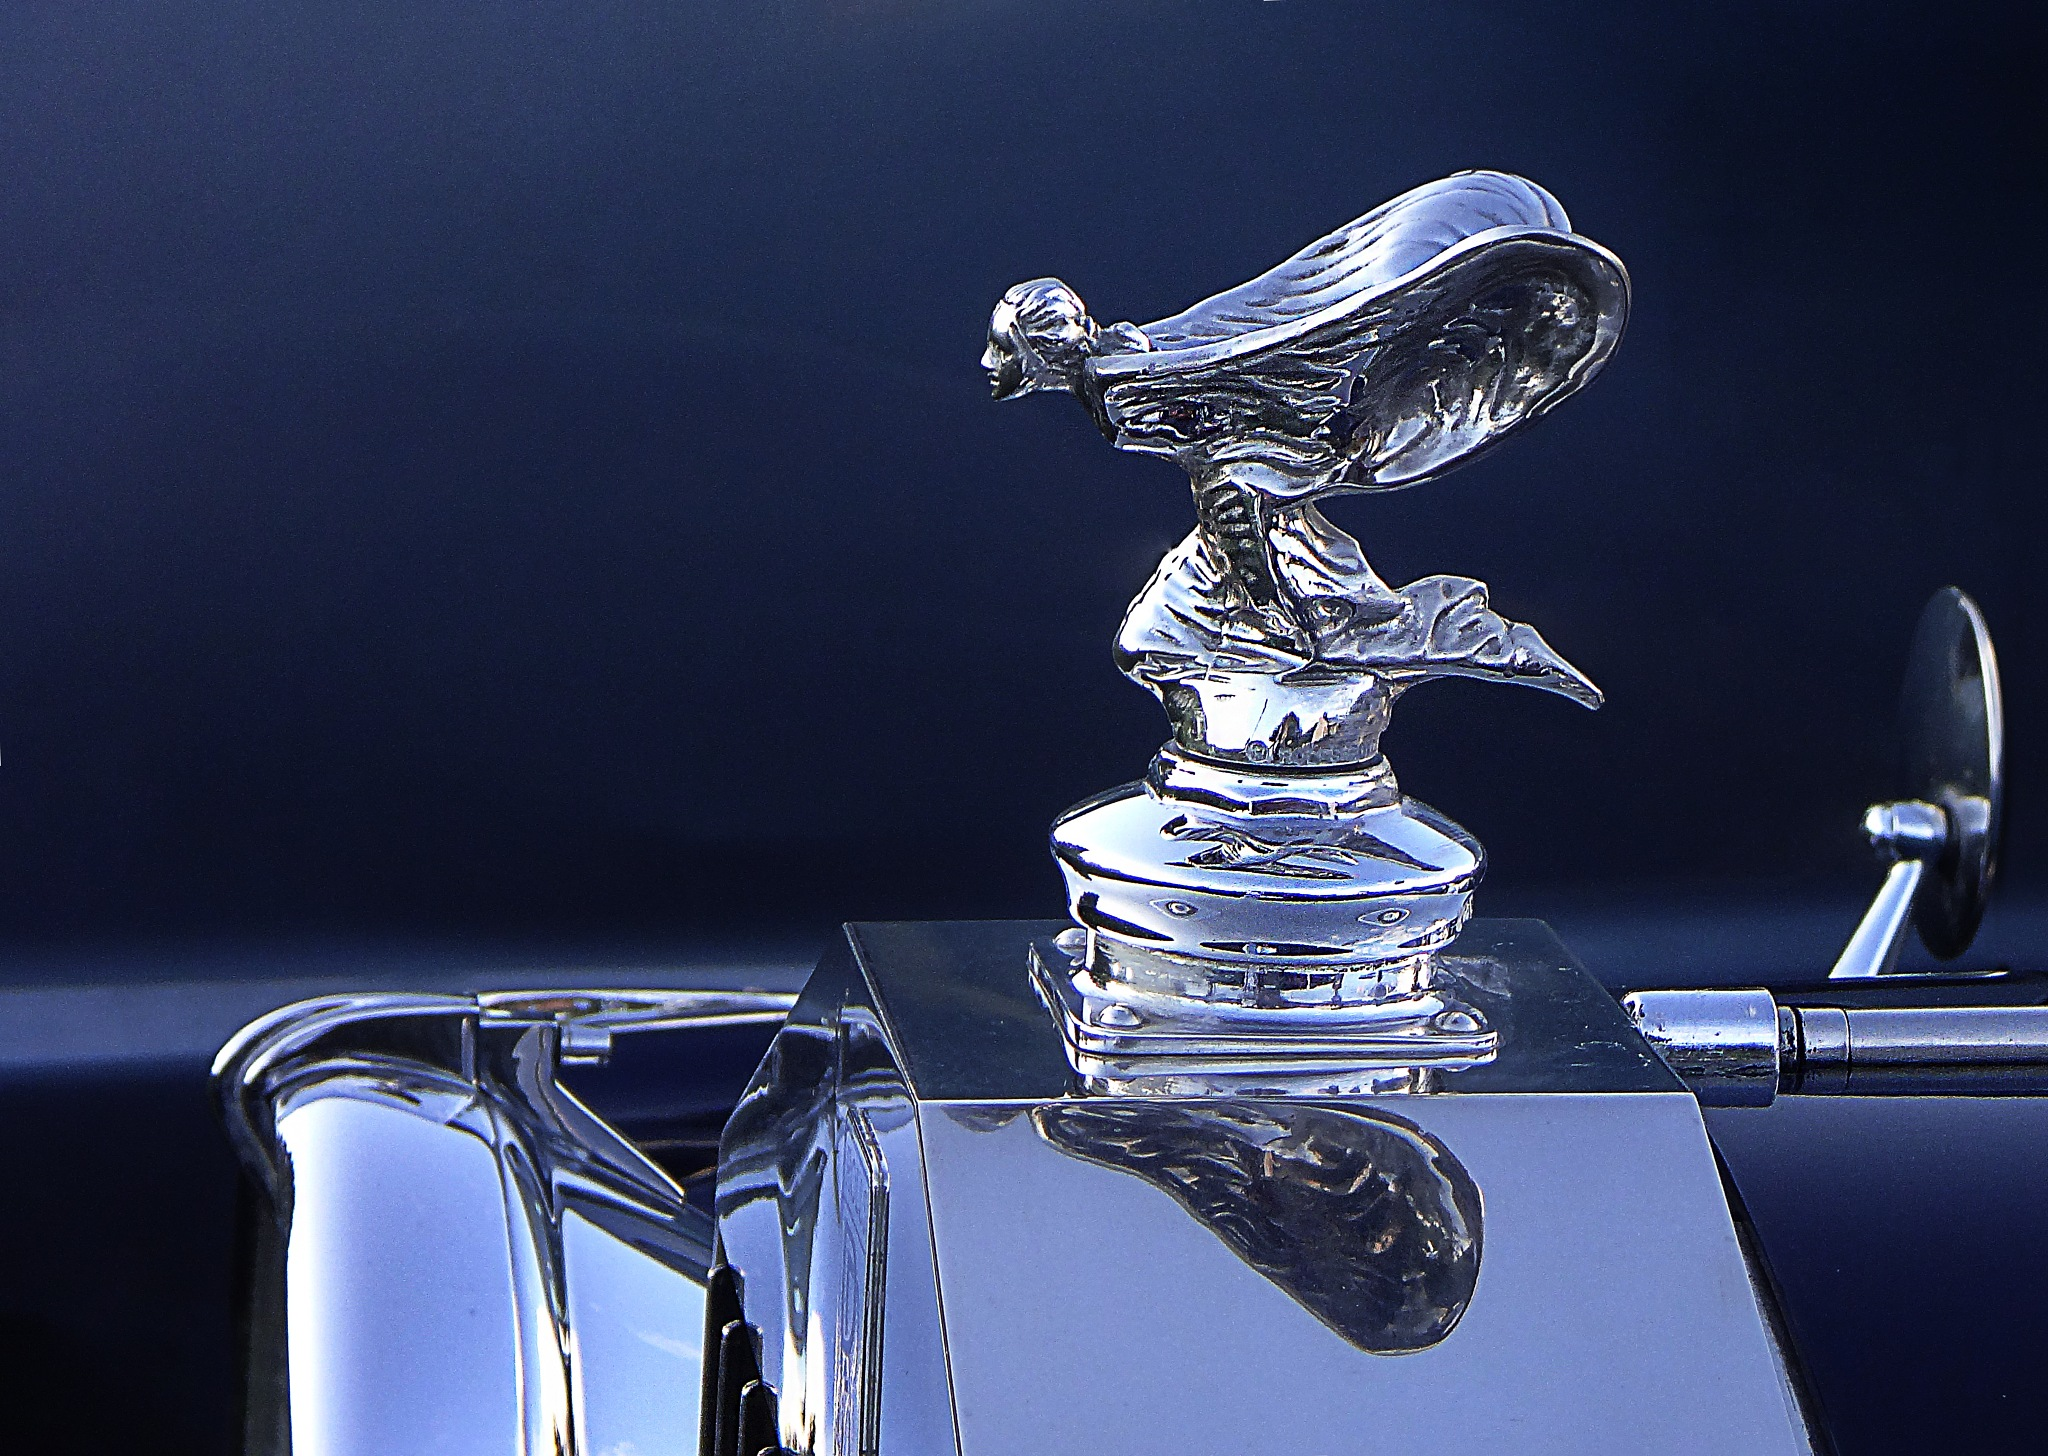 Rolls-Royce hood ornament by JMCtronic